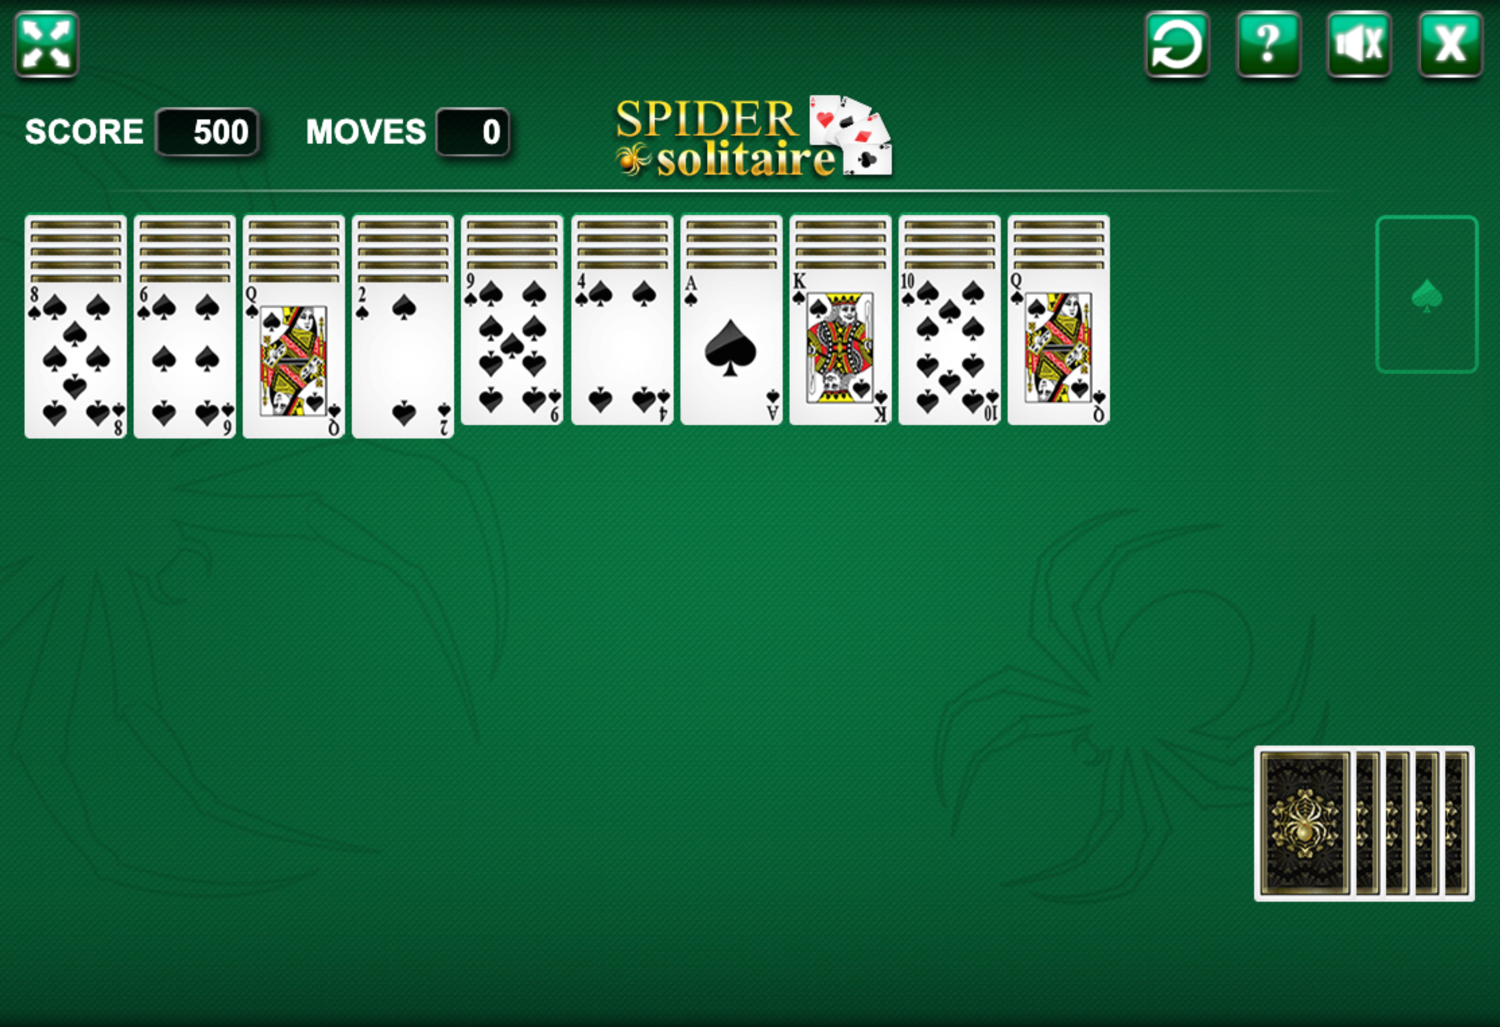 Single Suit Spider Solitaire In Play Screen Screenshot.